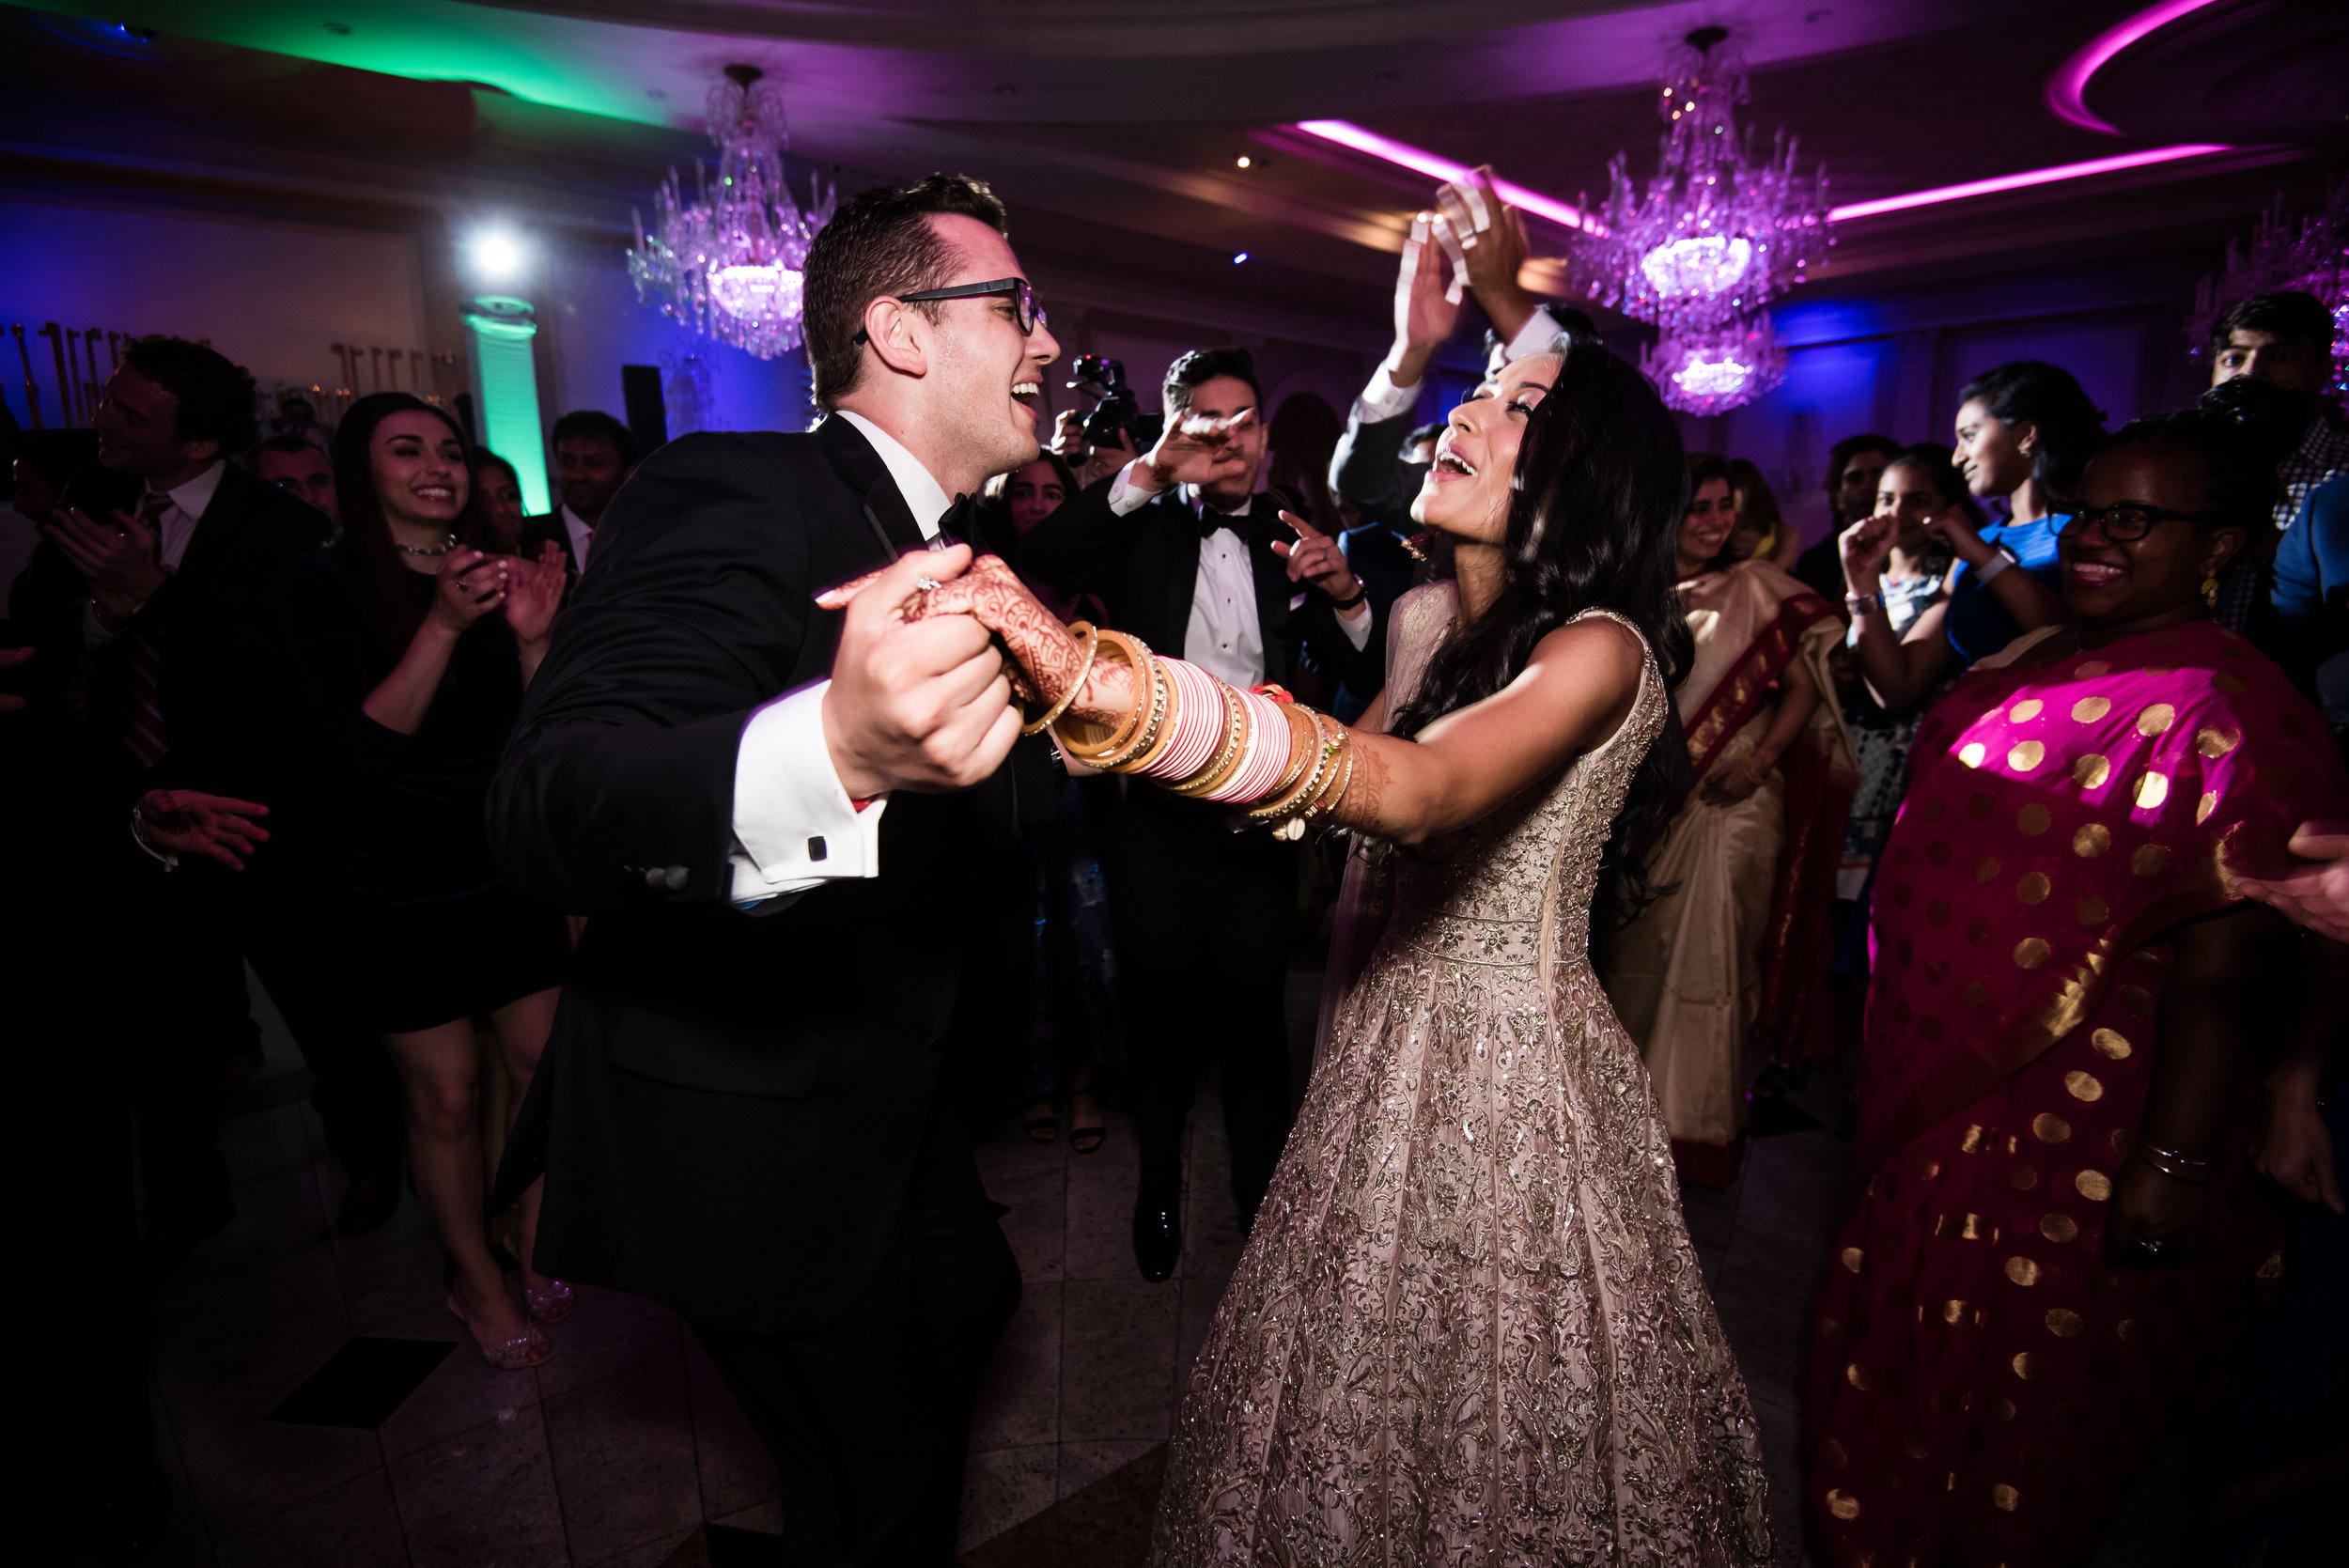 INDIAN WEDDING RECEPTION BRIDE AND GROOM DANCING.jpg